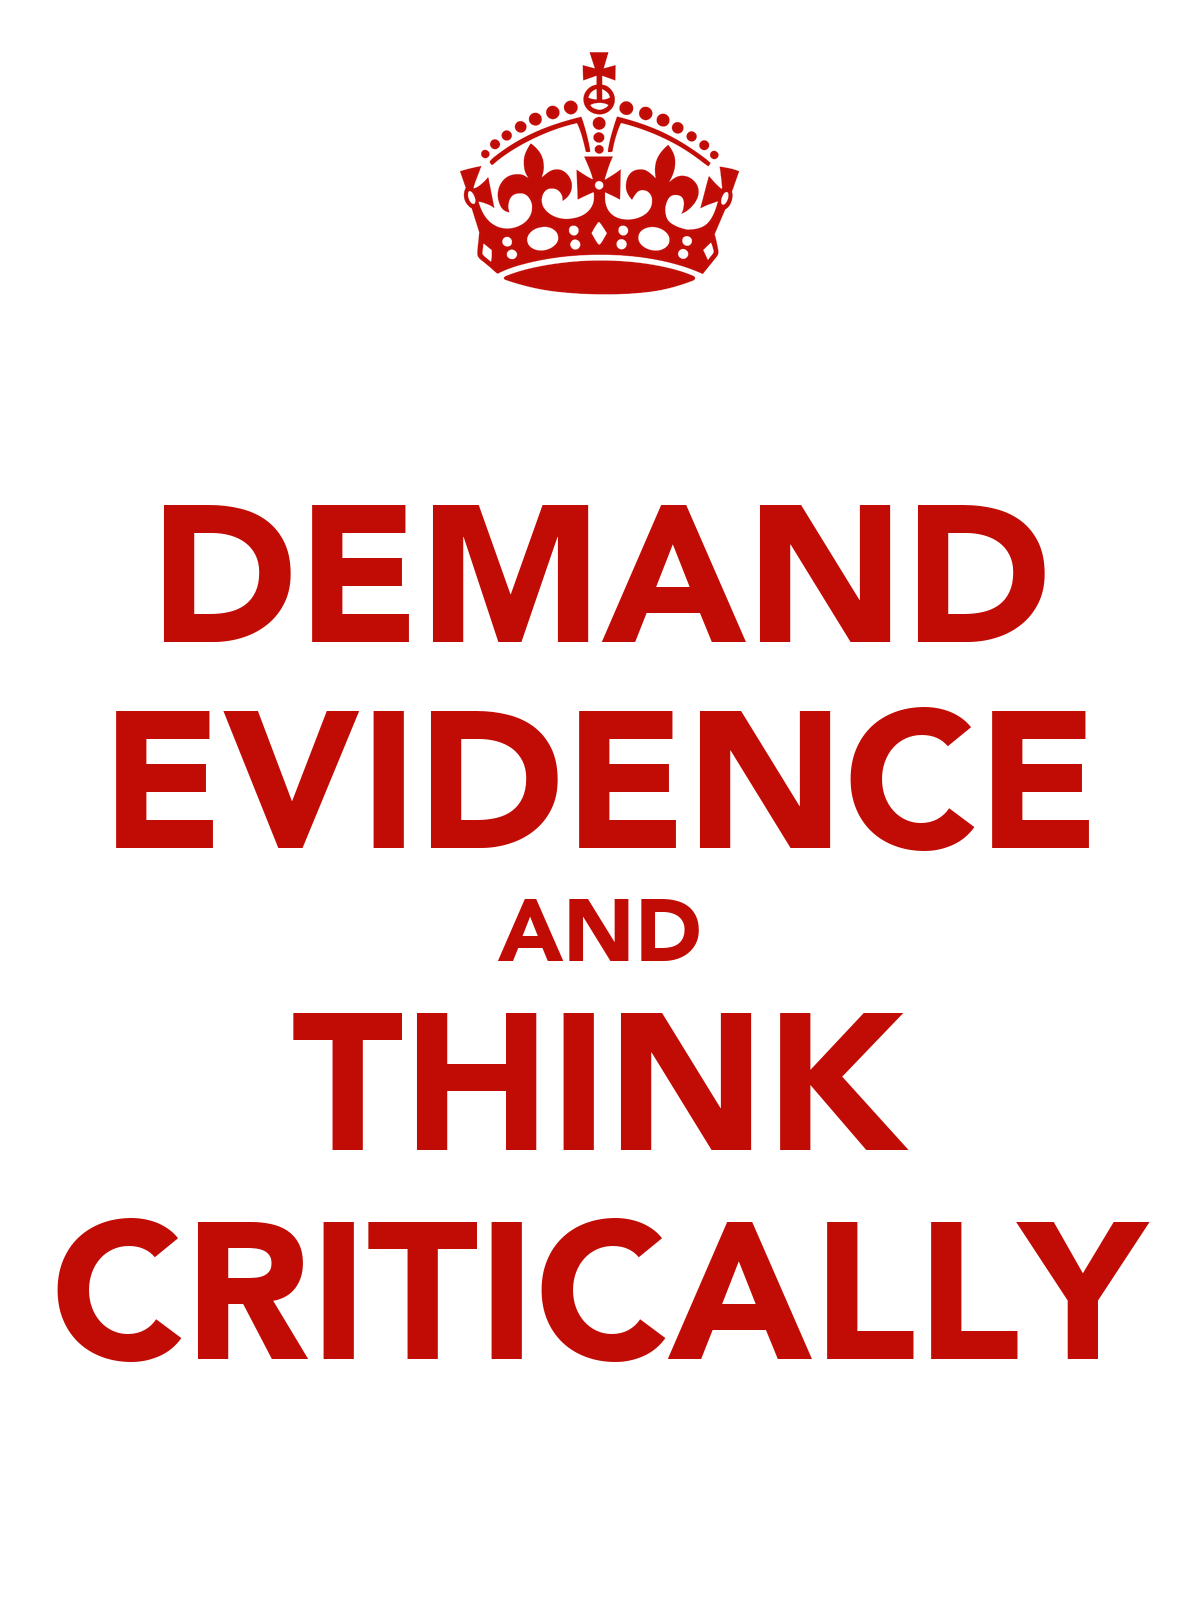 Demand evidence and think critically